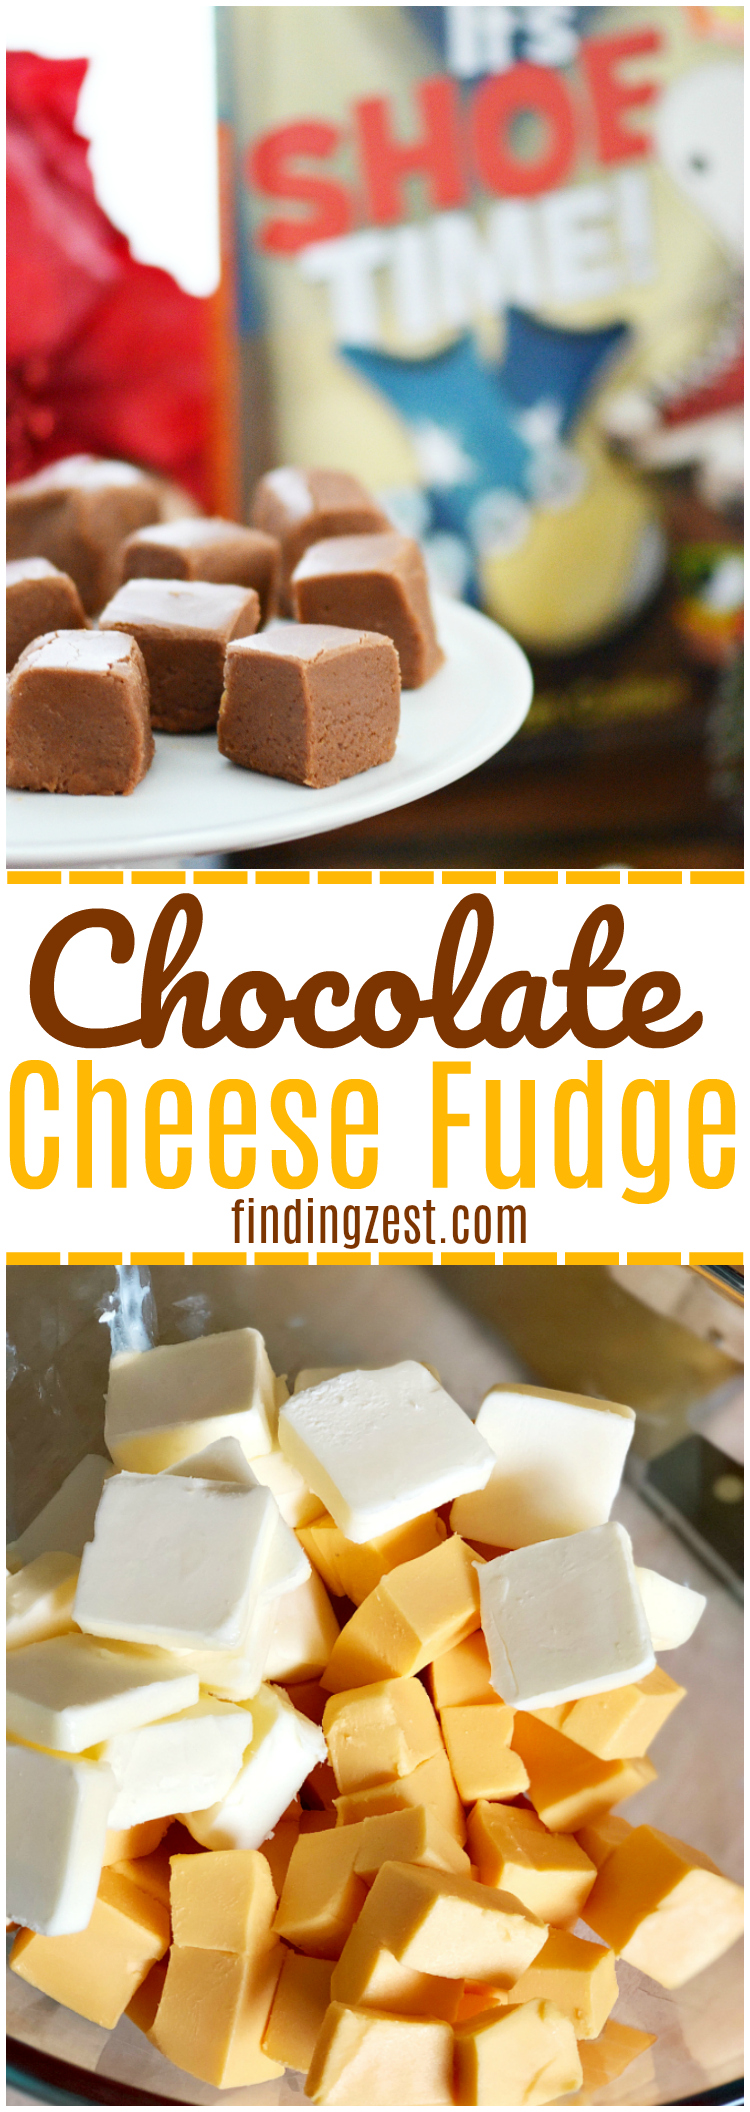 You must give this amazing chocolate cheese fudge recipe a try. We were inspired to make this unique combination recipe from It's Shoe Time! by Bryan Collier, a book about unlikely pairings! You won't believe how soft and fudgy it is! (It is also fun to make guests try to guess your special ingredient.